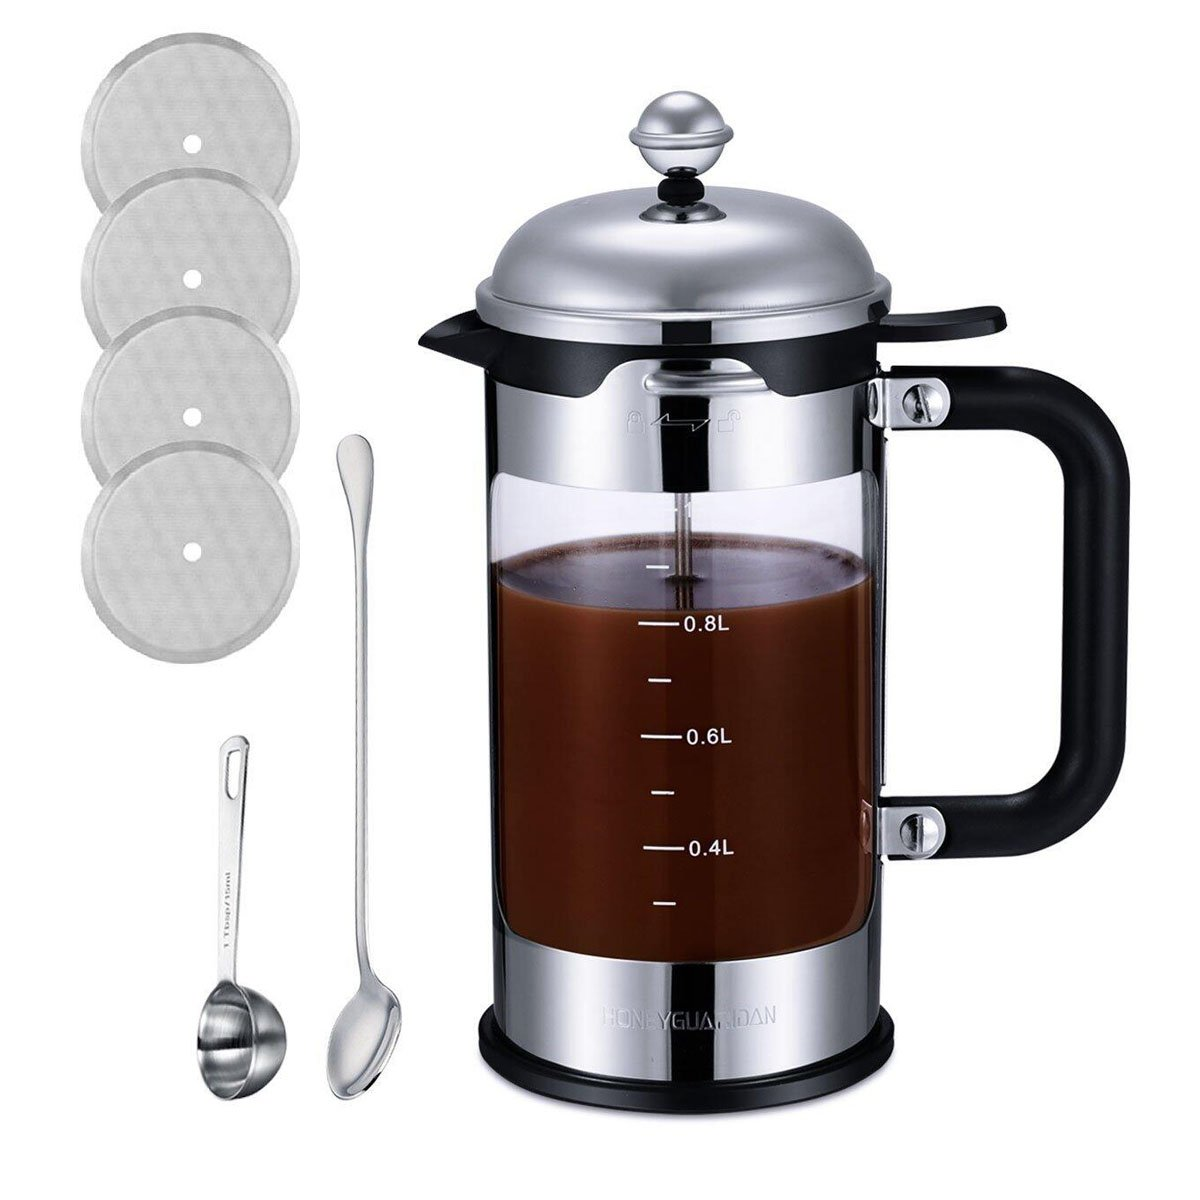 French Press Coffee Maker 34 oz 8 Cup (1 Liter)